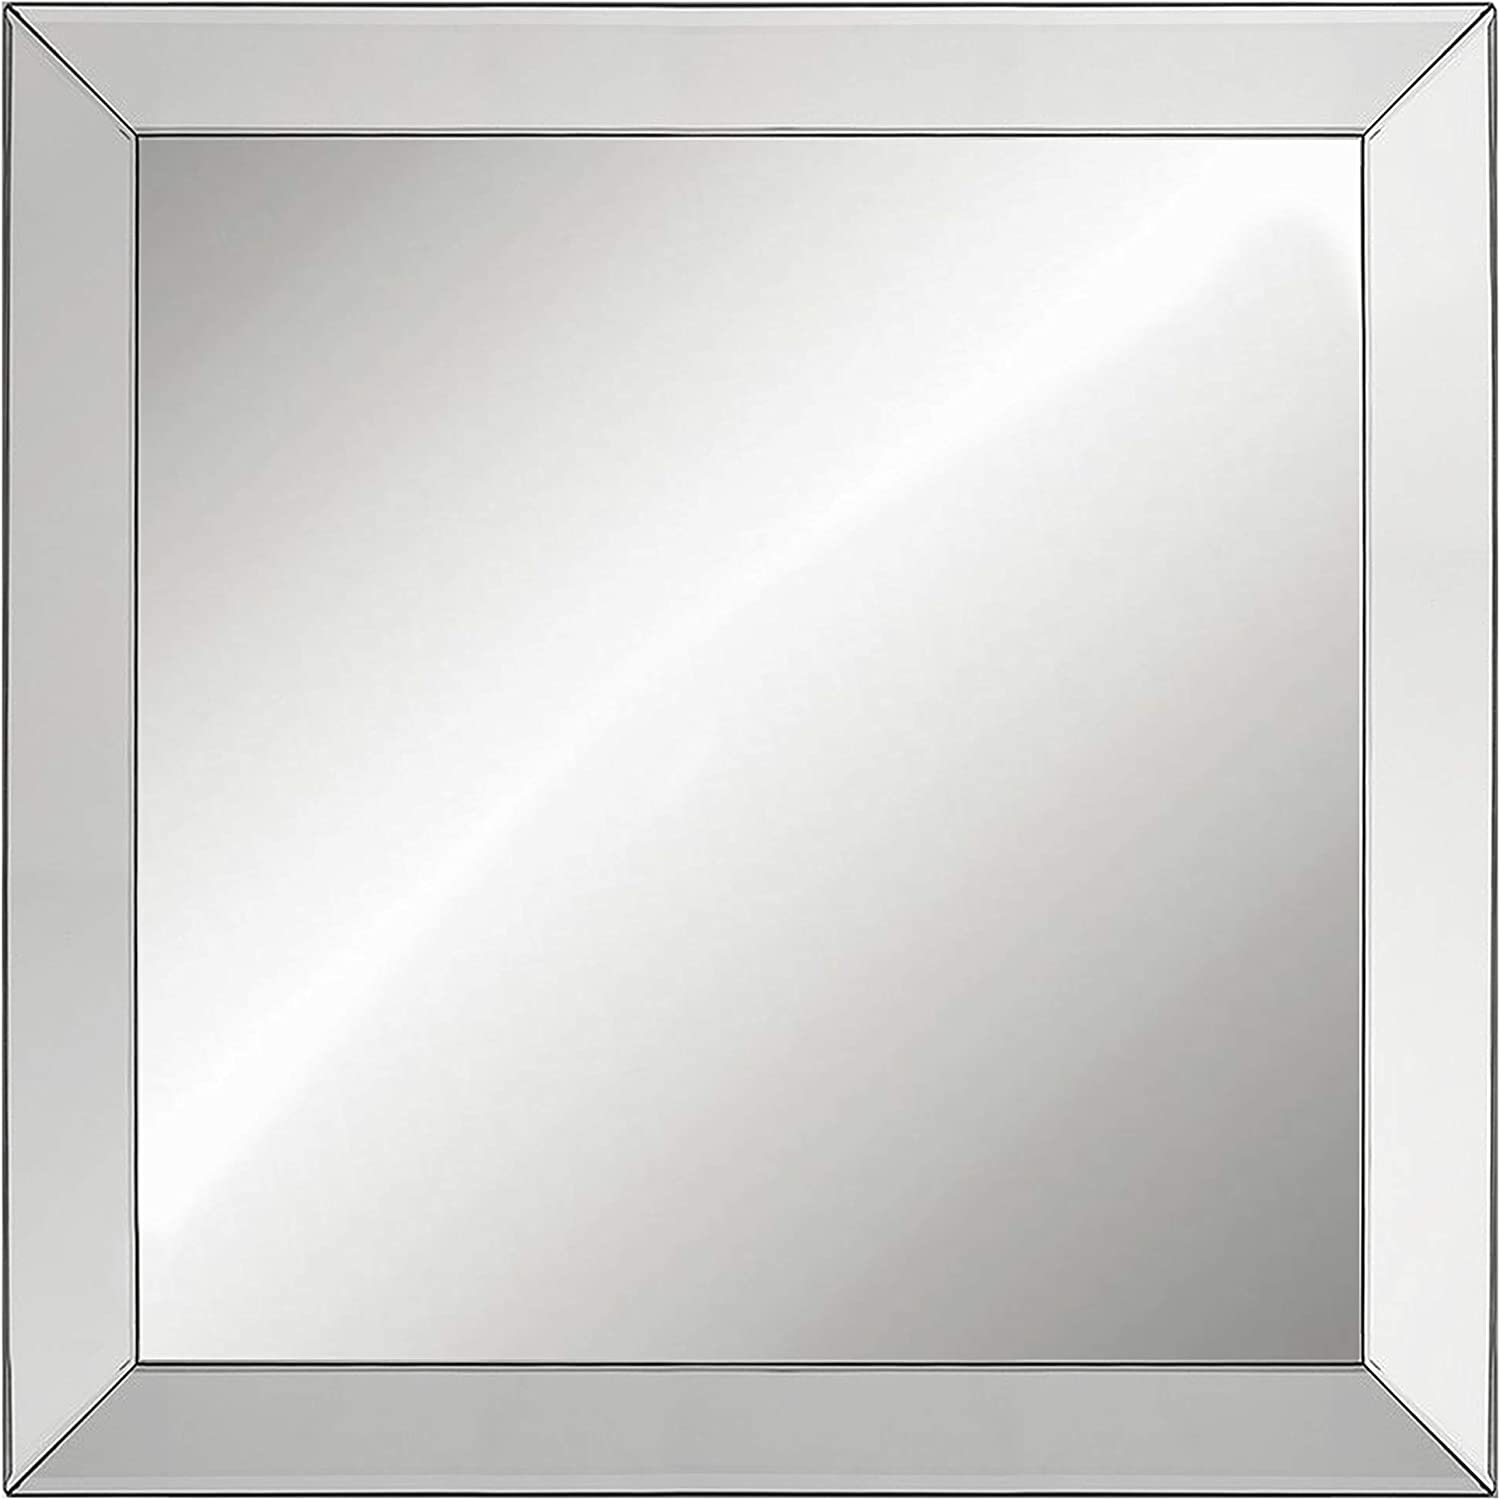 Amazon Com Large Elegant Framed Wall Mounted Mirror With Angled Beveled Mirror Frame Bathroom Vanity Mirror Bedroom Framed Mirror Square Wall Mirror Full Size About 26 5 X 26 5 Home Kitchen